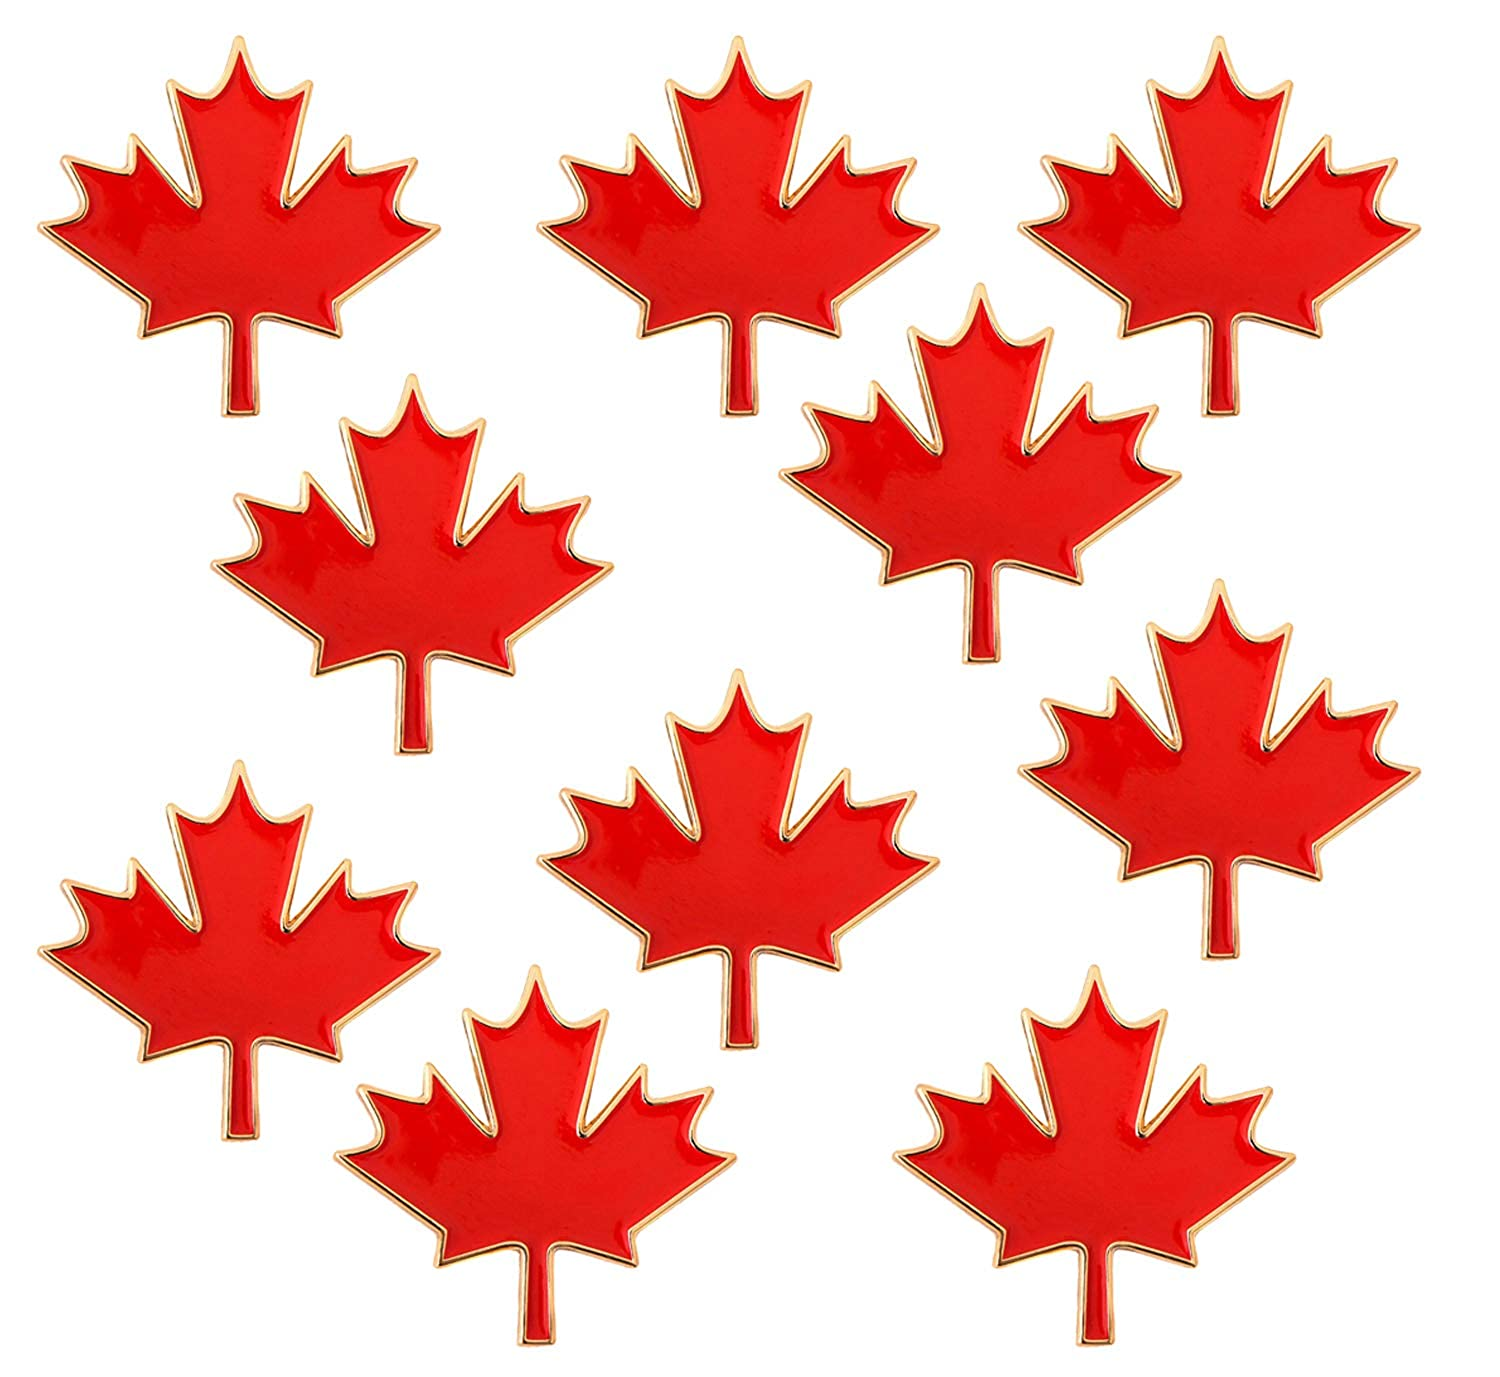 rhungift Proudly Canada Flag Pin Maple Leaf Jewelry Quality Lapel Pins